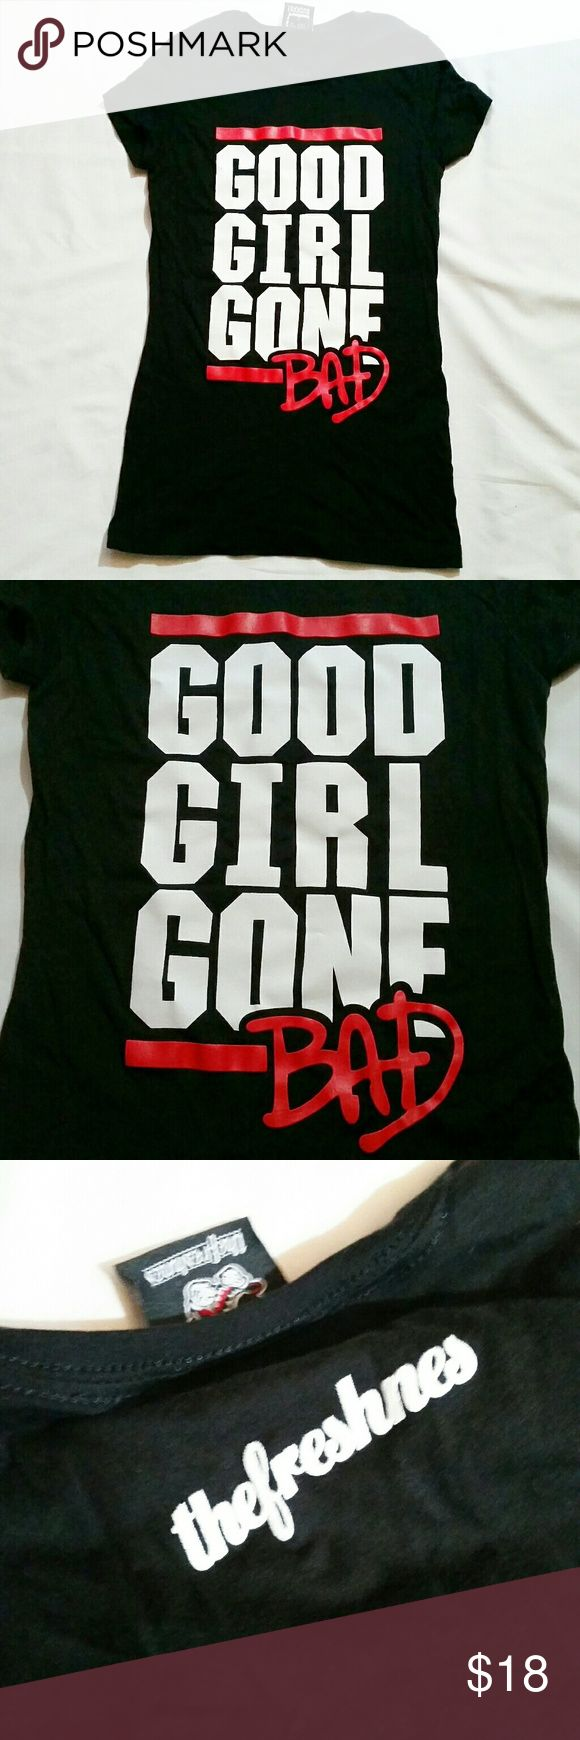 """""""Good girl gone bad"""" graphic tee Black jersey t shirt with DMC-style graphic saying """"good girl gone bad,"""" the title of an album and song by Rihanna.  """"Bad"""" is done in a handwritten style in red, a la the Michael Jackson album cover. Super cool shirt with cleverly mixed pop culture references, great for a street style look.  The black of the shirt is still deep and vibrant - no fading. I don't think I ever wore it, but can't say for sure.   26"""" from shoulder at the neckline down to the hem…"""